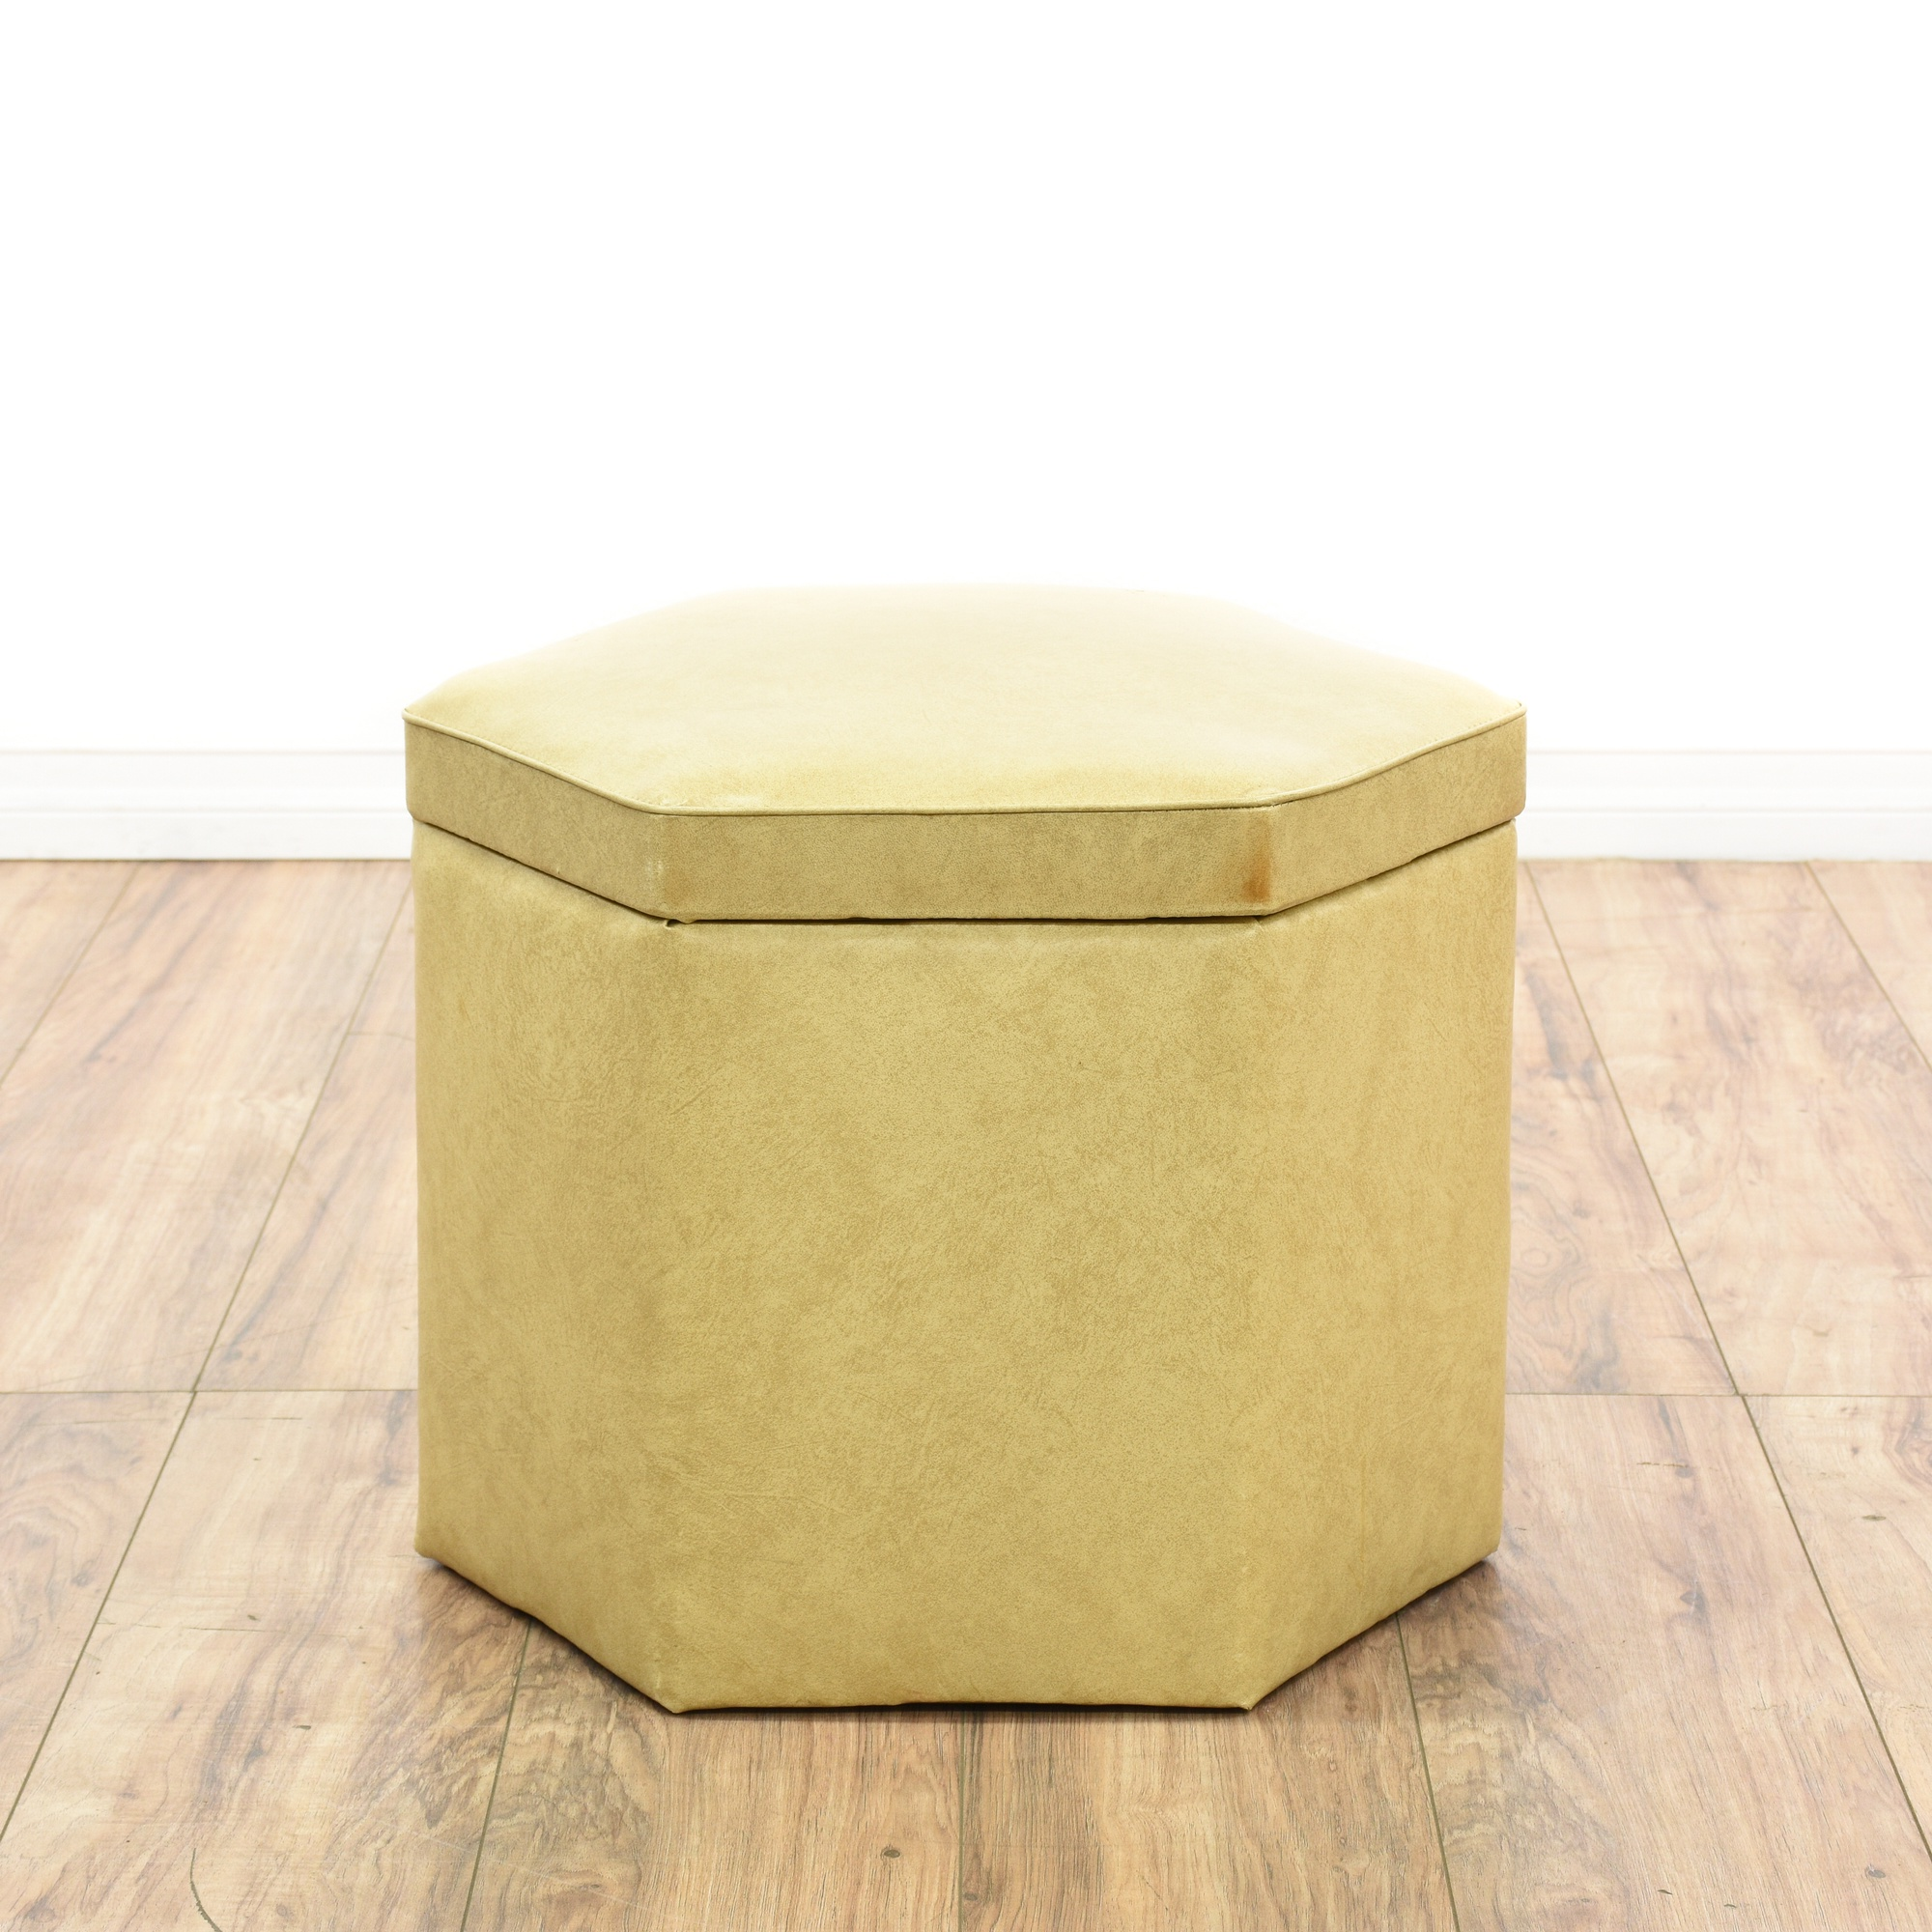 Hexagon Beige Faux Leather Vinyl Storage Ottoman | Loveseat Vintage Furniture San Diego  sc 1 st  Loveseat & Hexagon Beige Faux Leather Vinyl Storage Ottoman | Loveseat Vintage ...